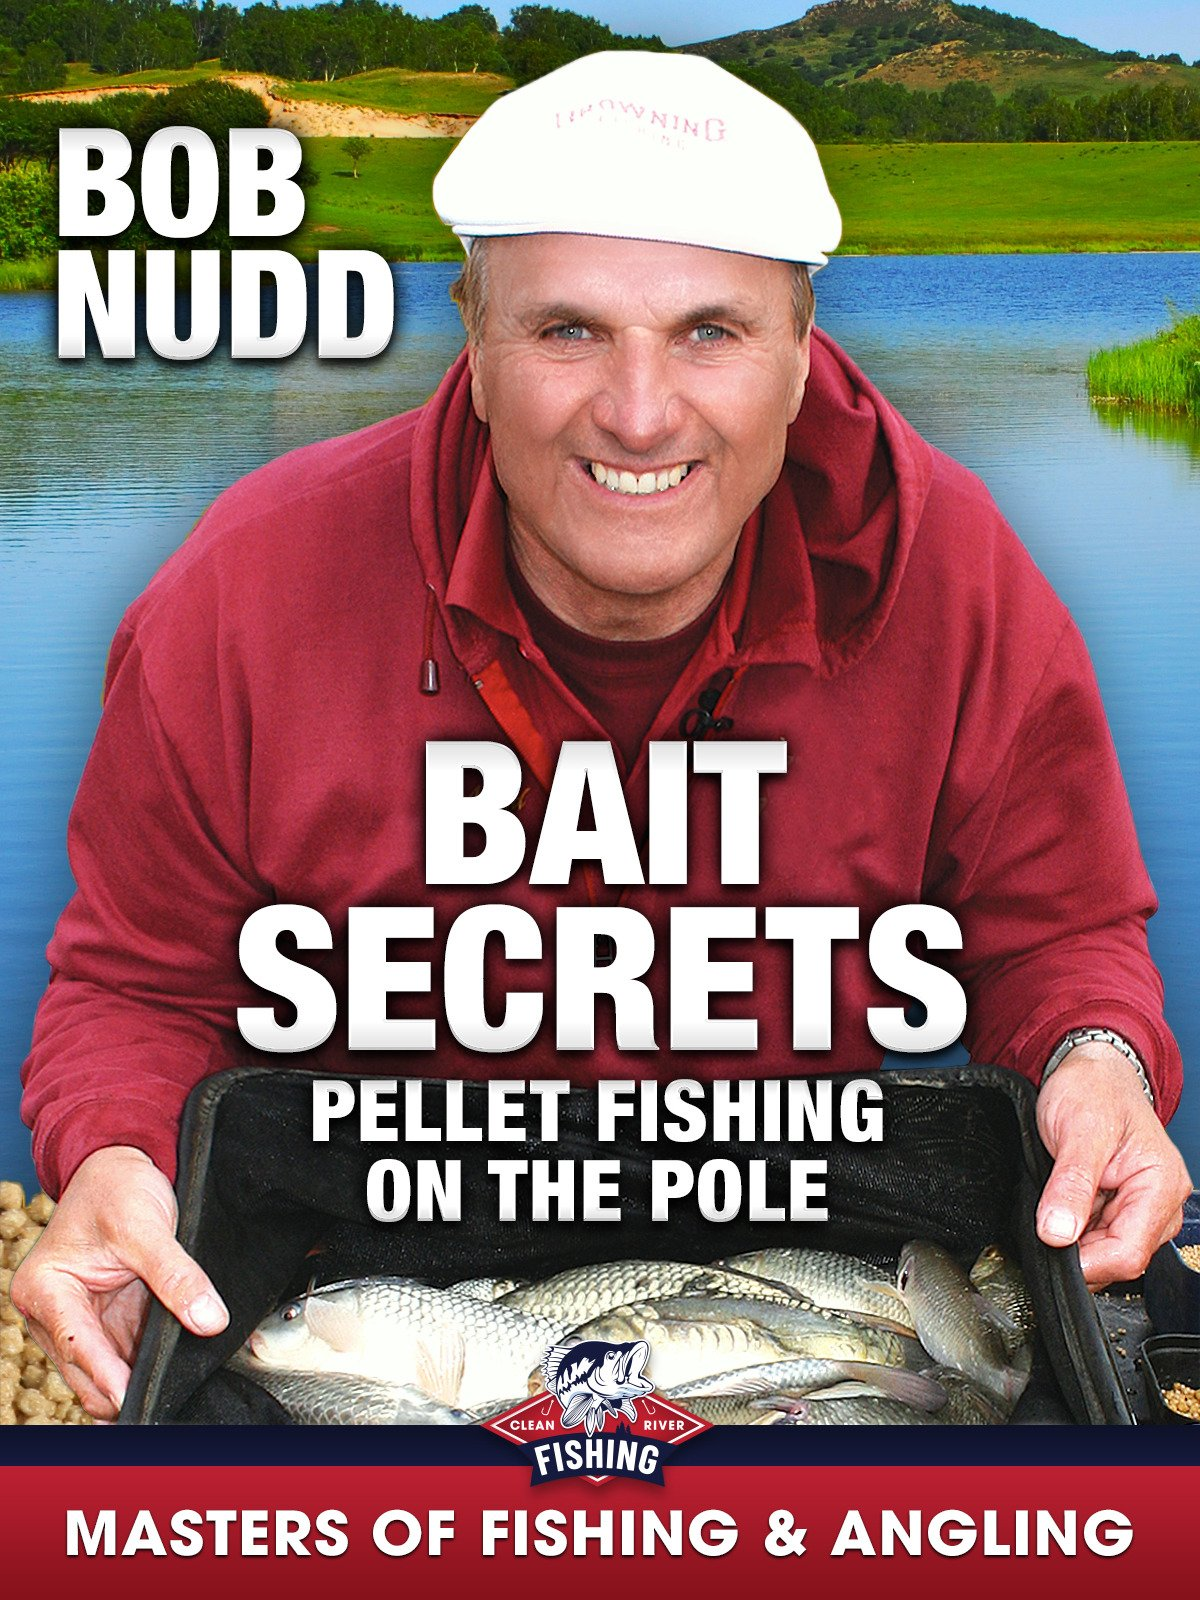 Bait Secrets: Pellet Fishing on the Pole - Bob Nudd (Masters of Fishing & Angling)